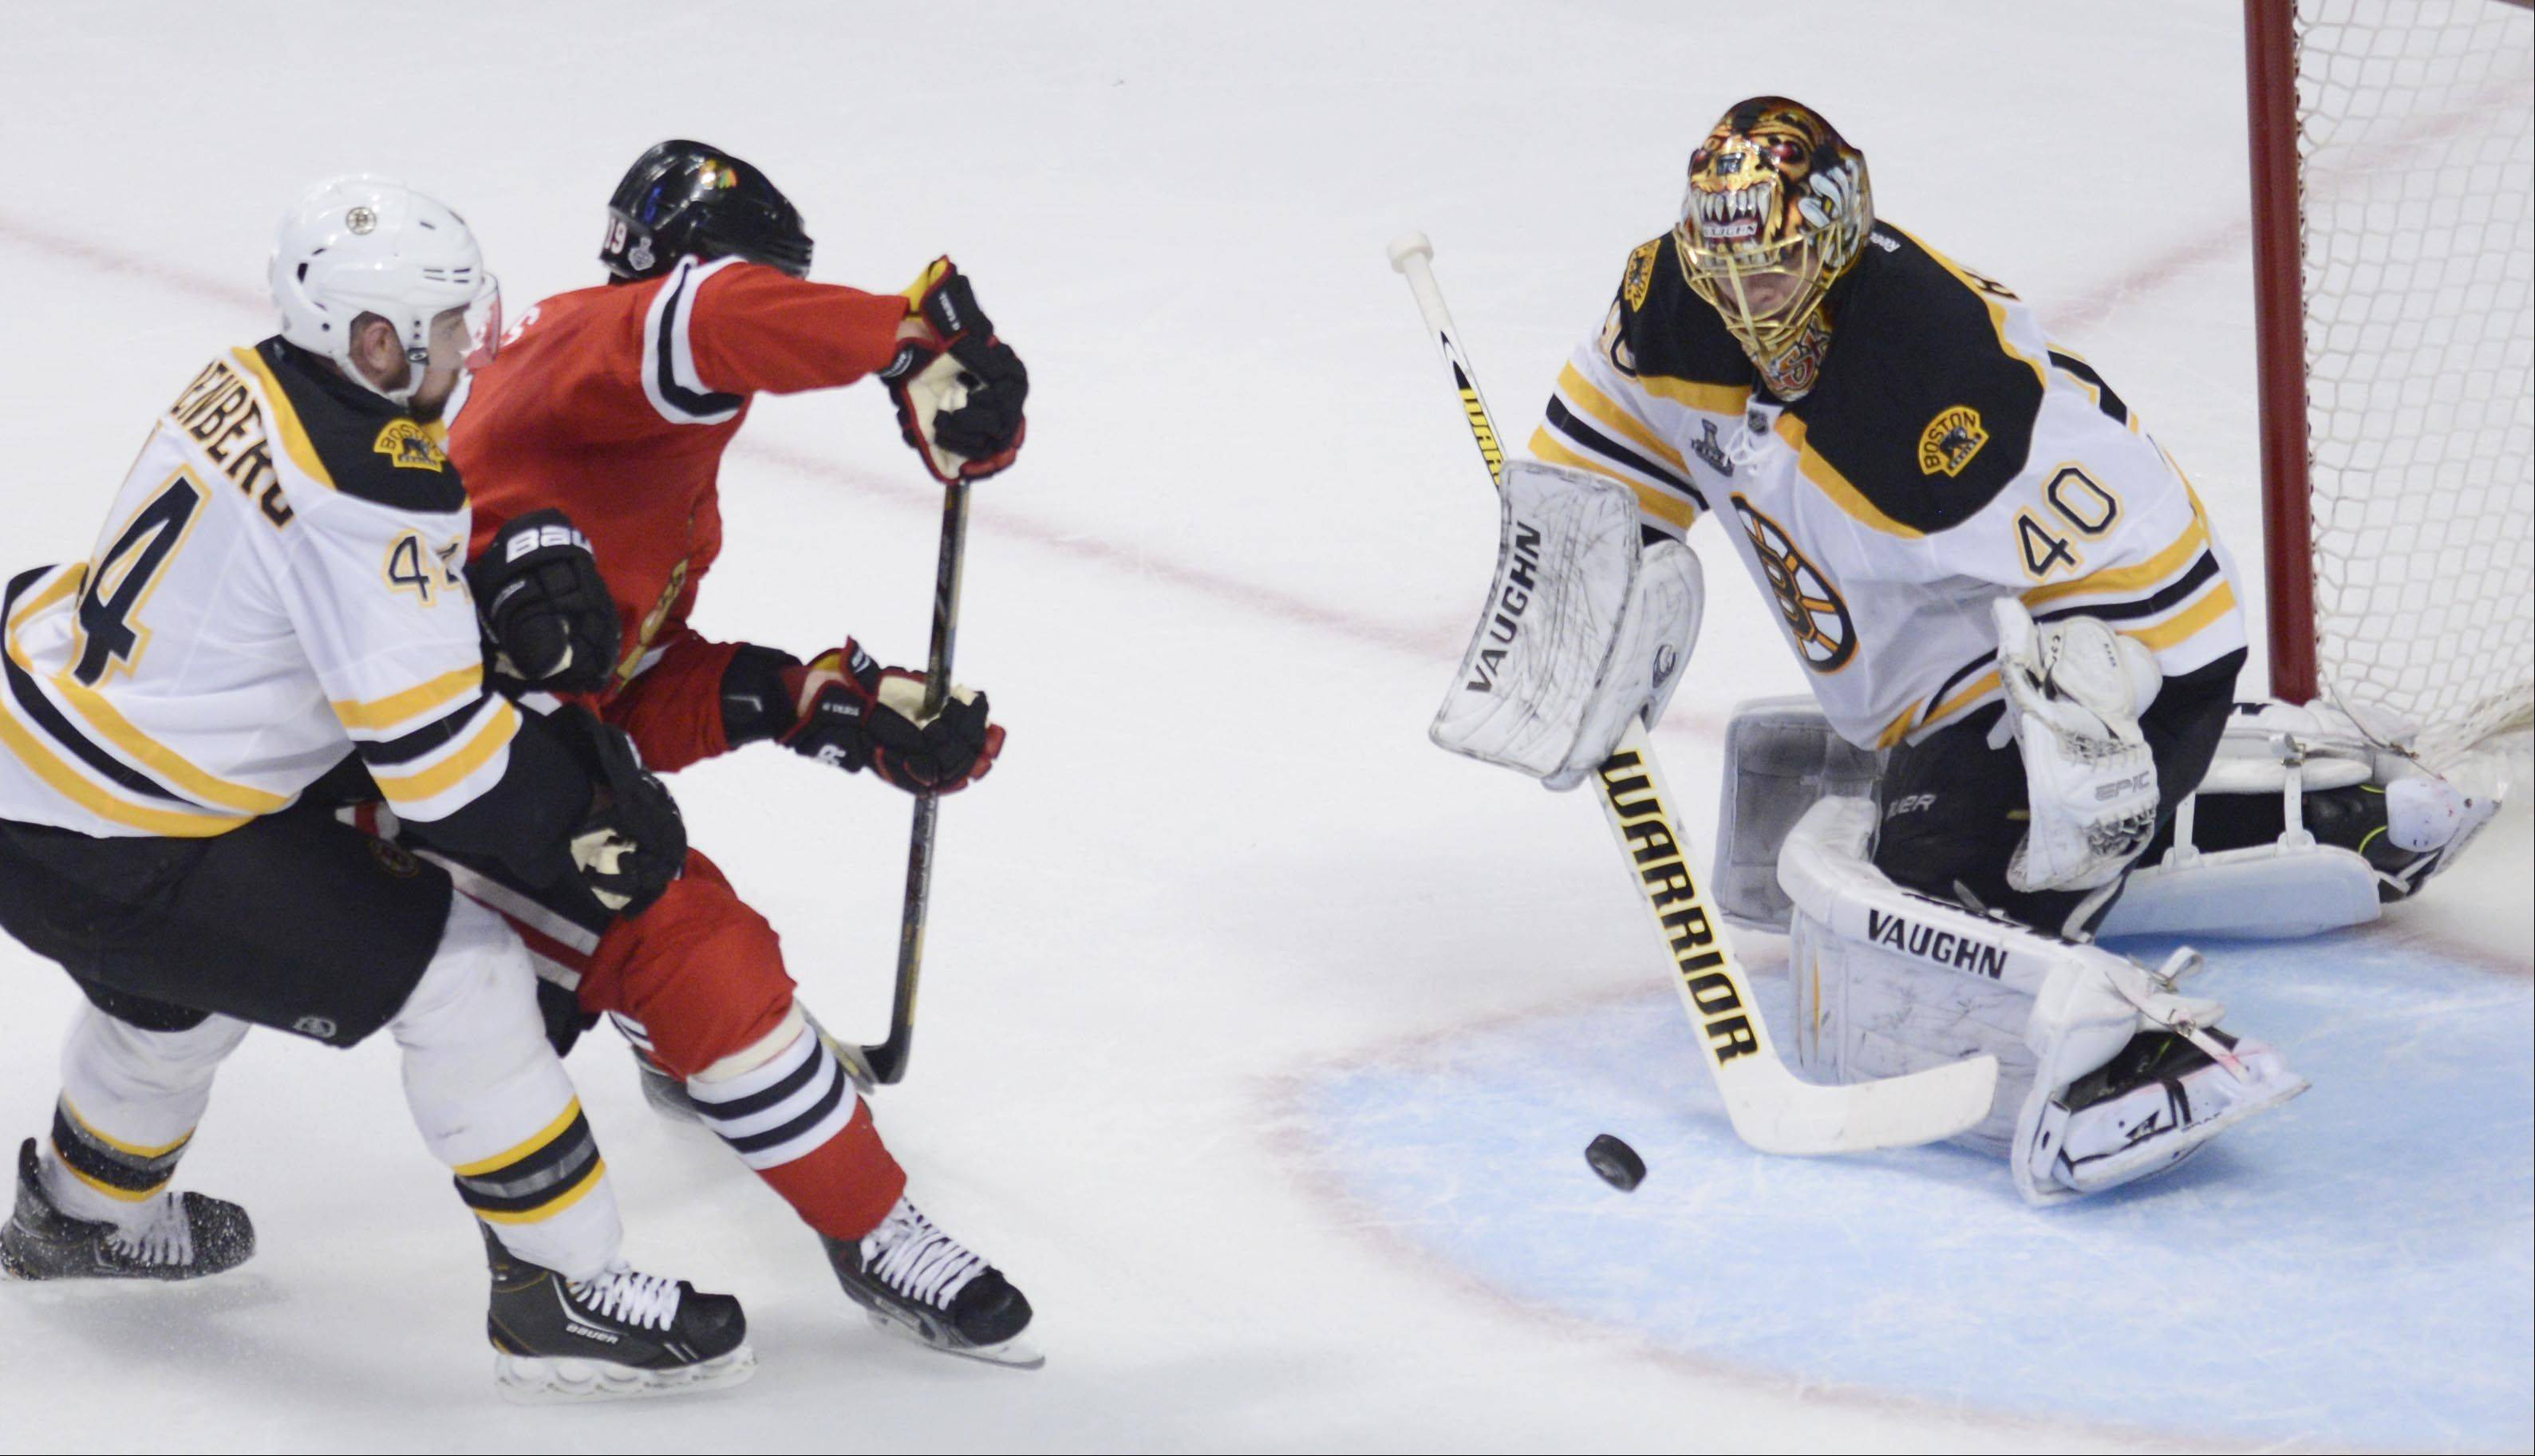 Chicago Blackhawks center Jonathan Toews shoots with Boston Bruins defenseman Dennis Seidenberg on his back.